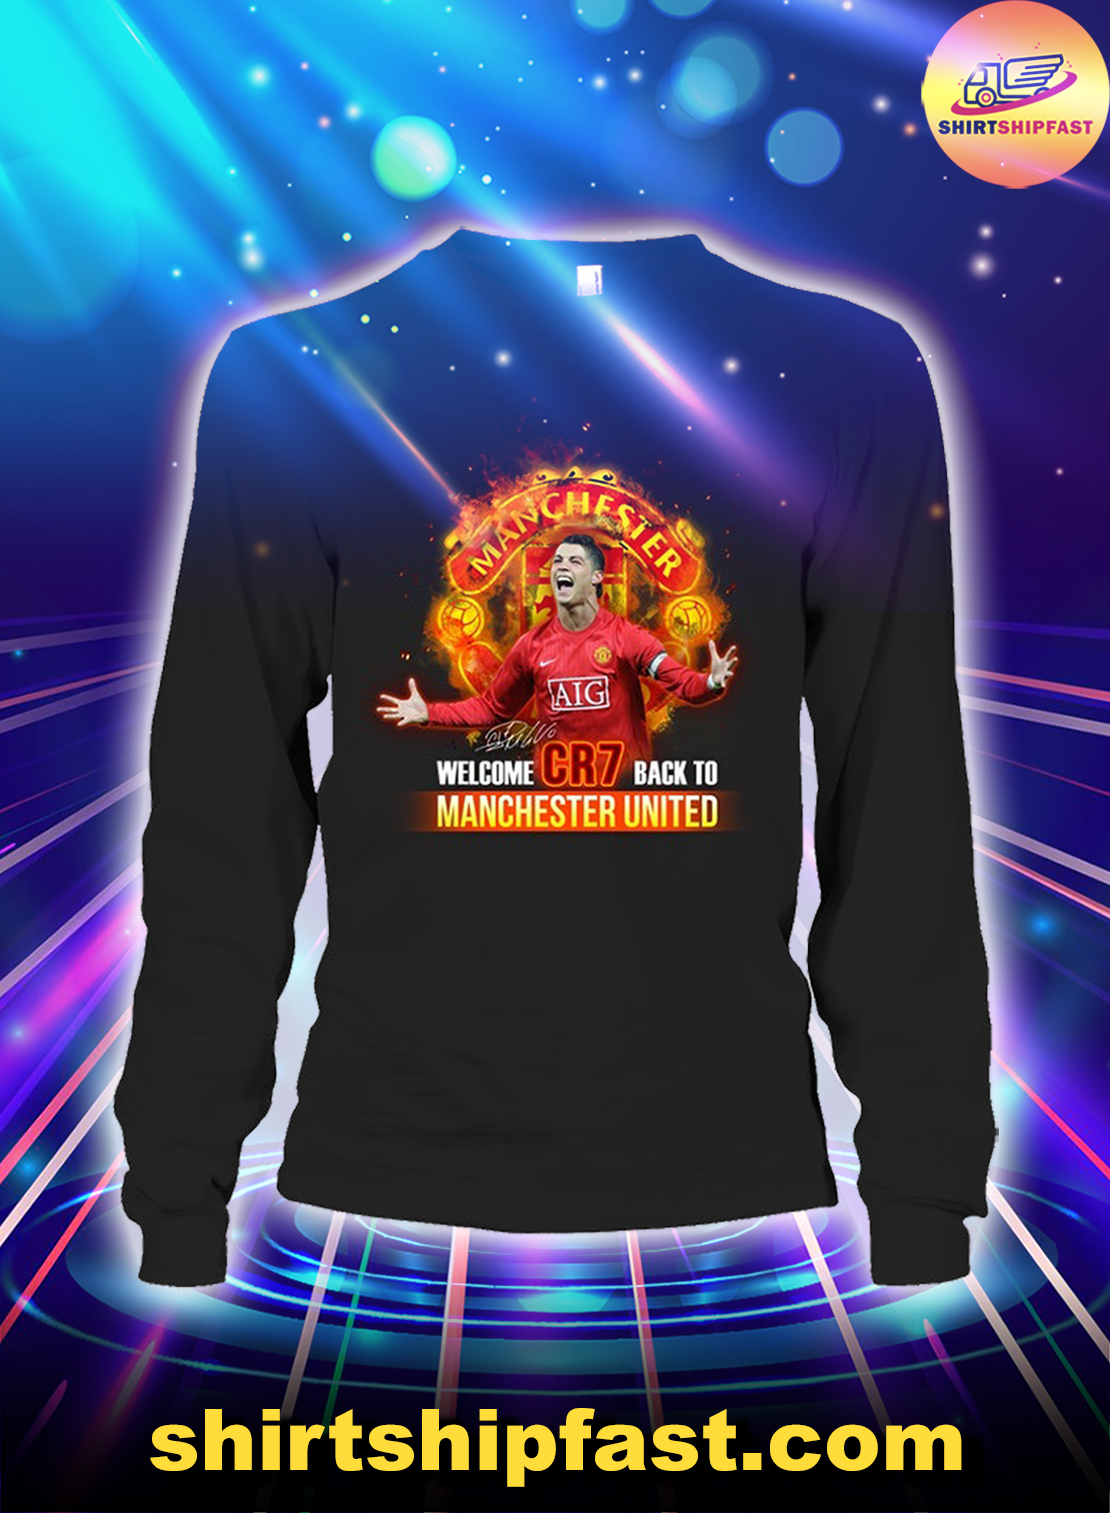 Welcome CR7 back to Manchester United long sleeve tee